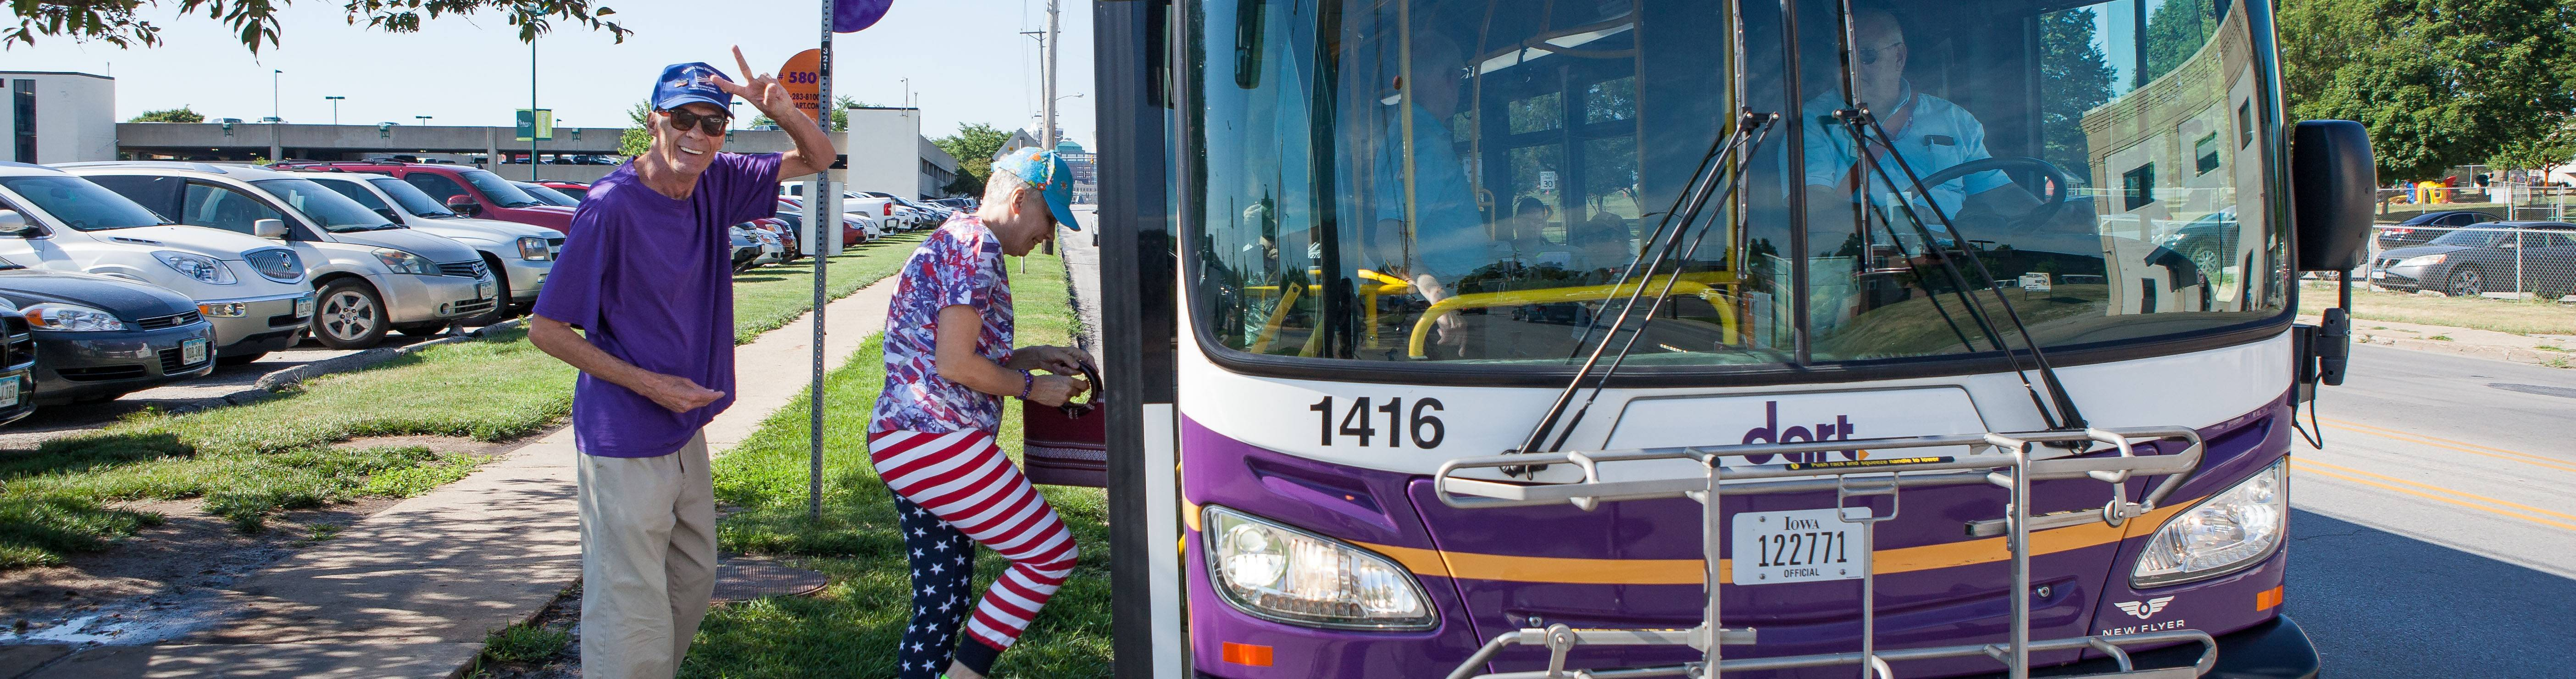 No DART service on Independence Day